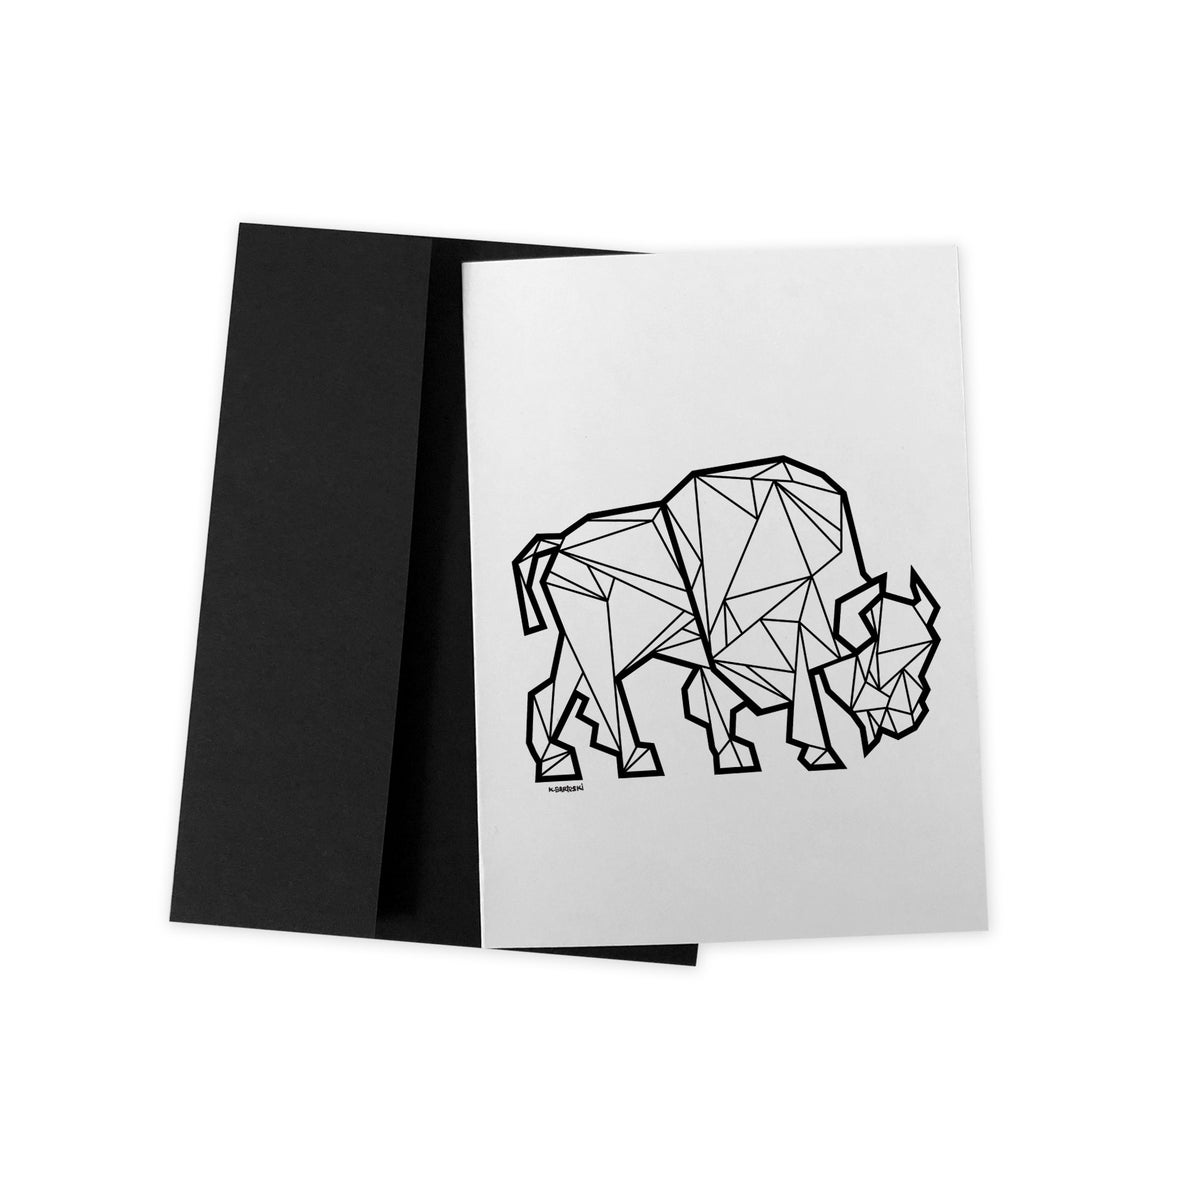 Image of BISON #kbwilder greeting card